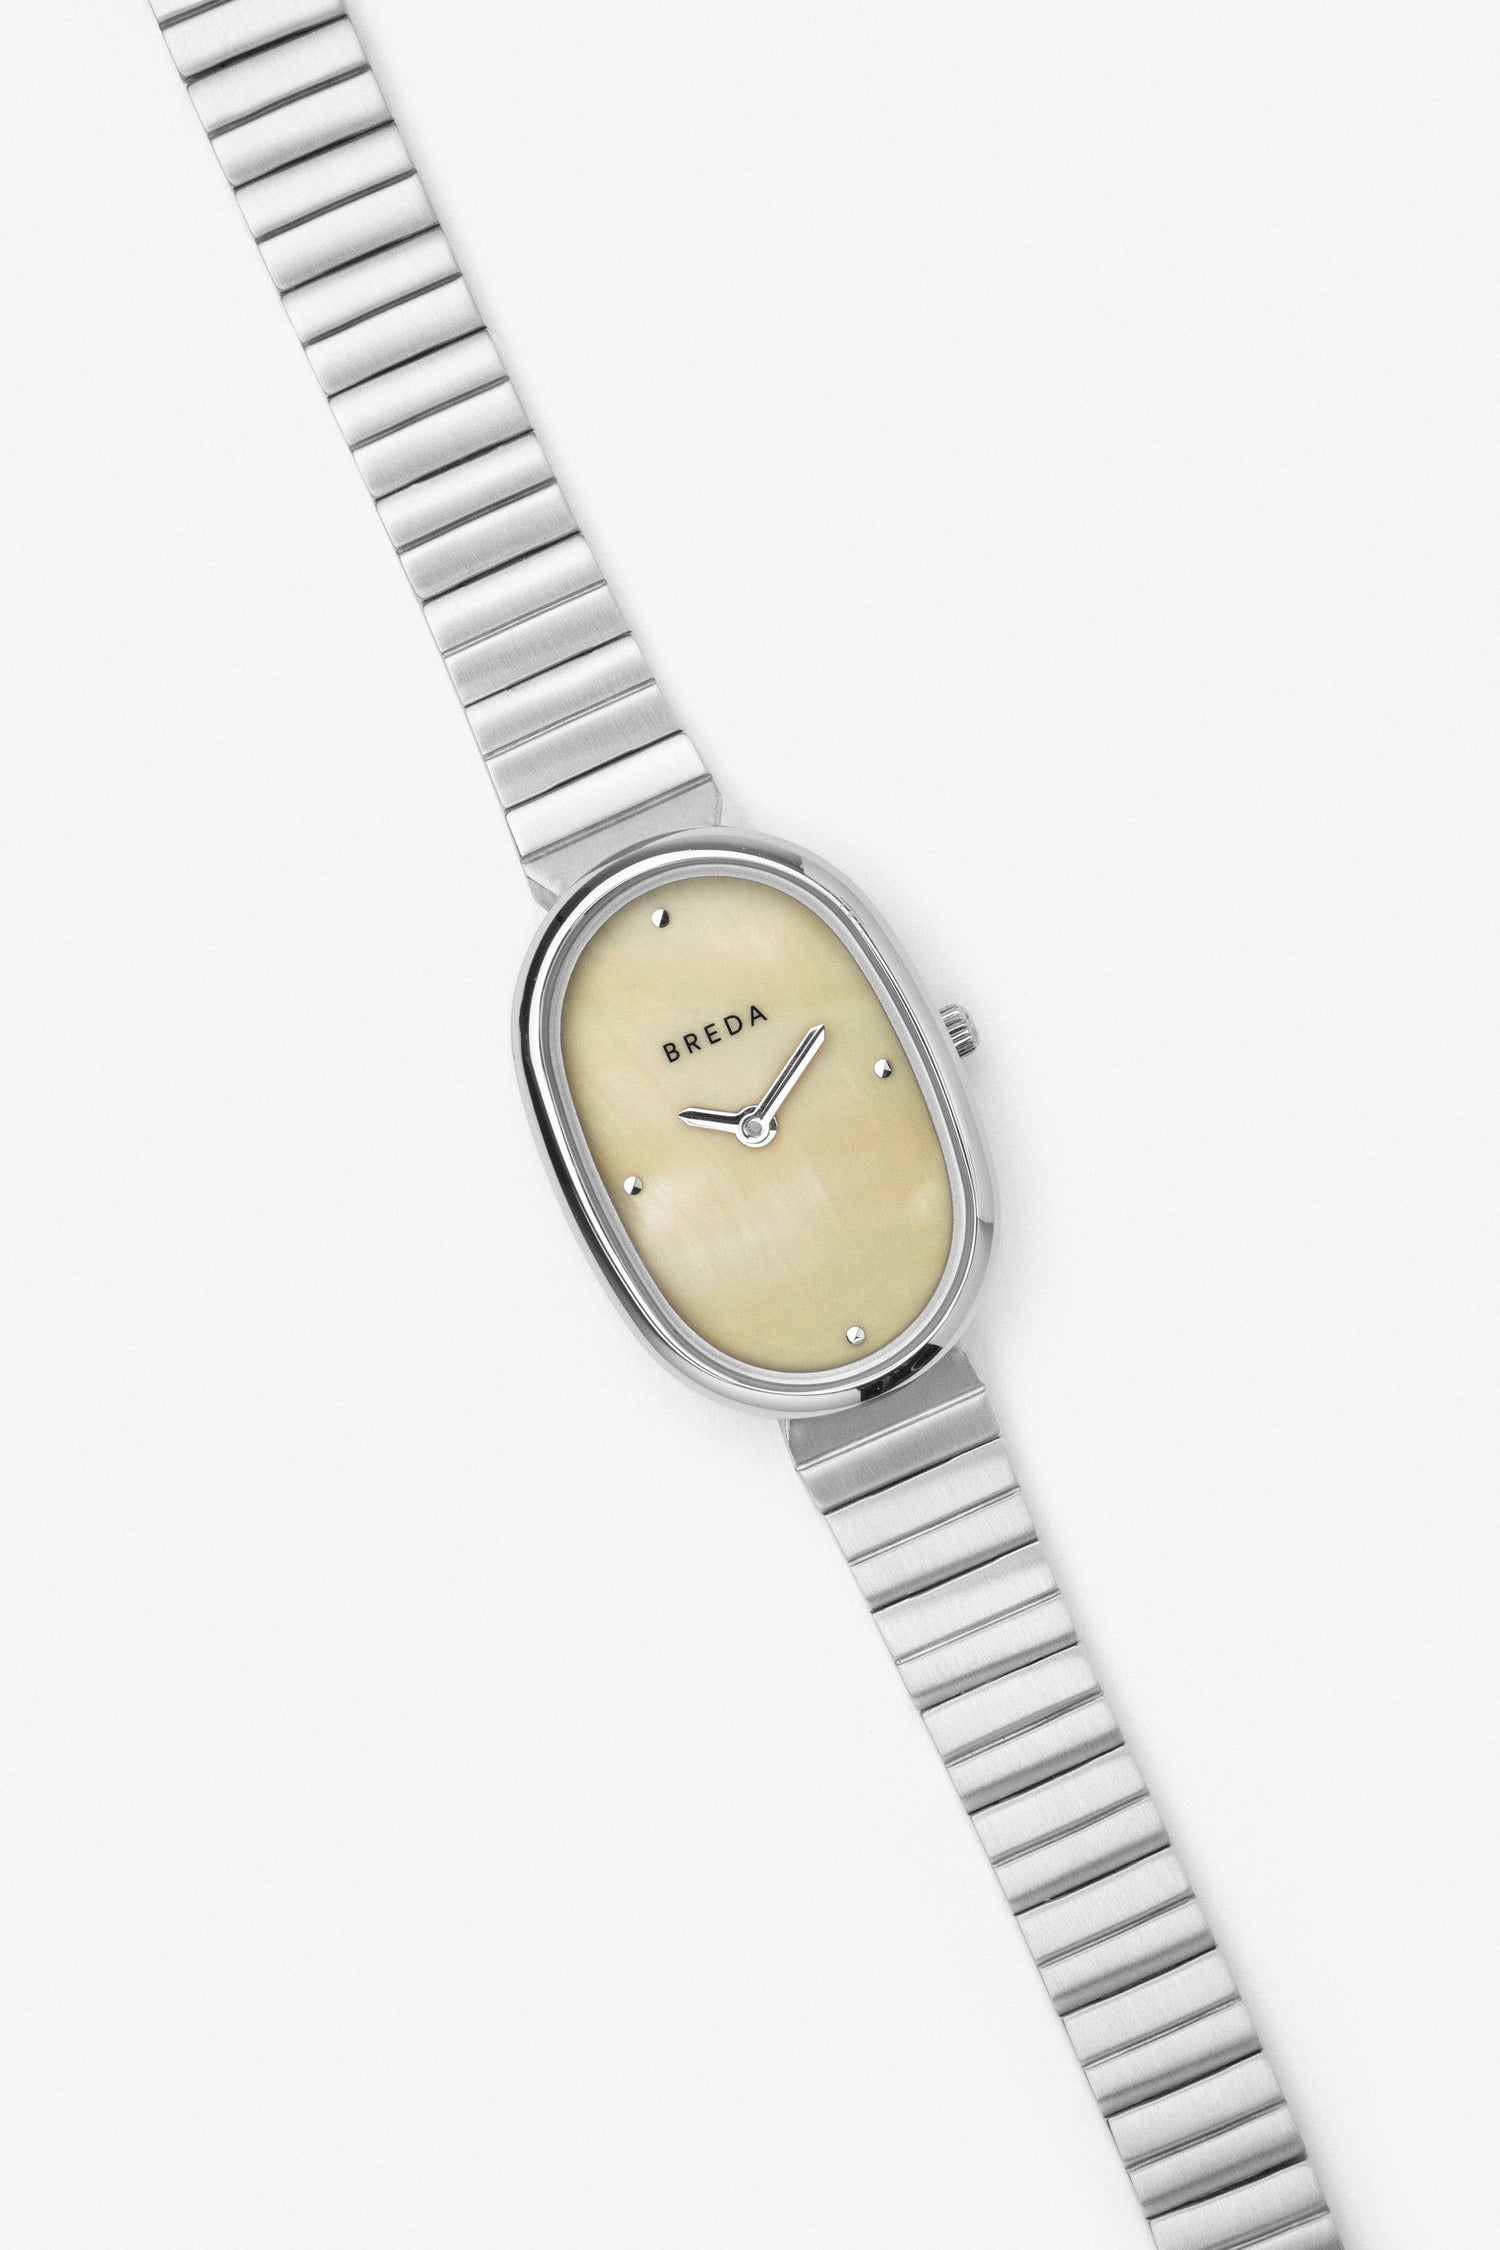 breda-jane-1741a-silver-metal-bracelet-watch-long